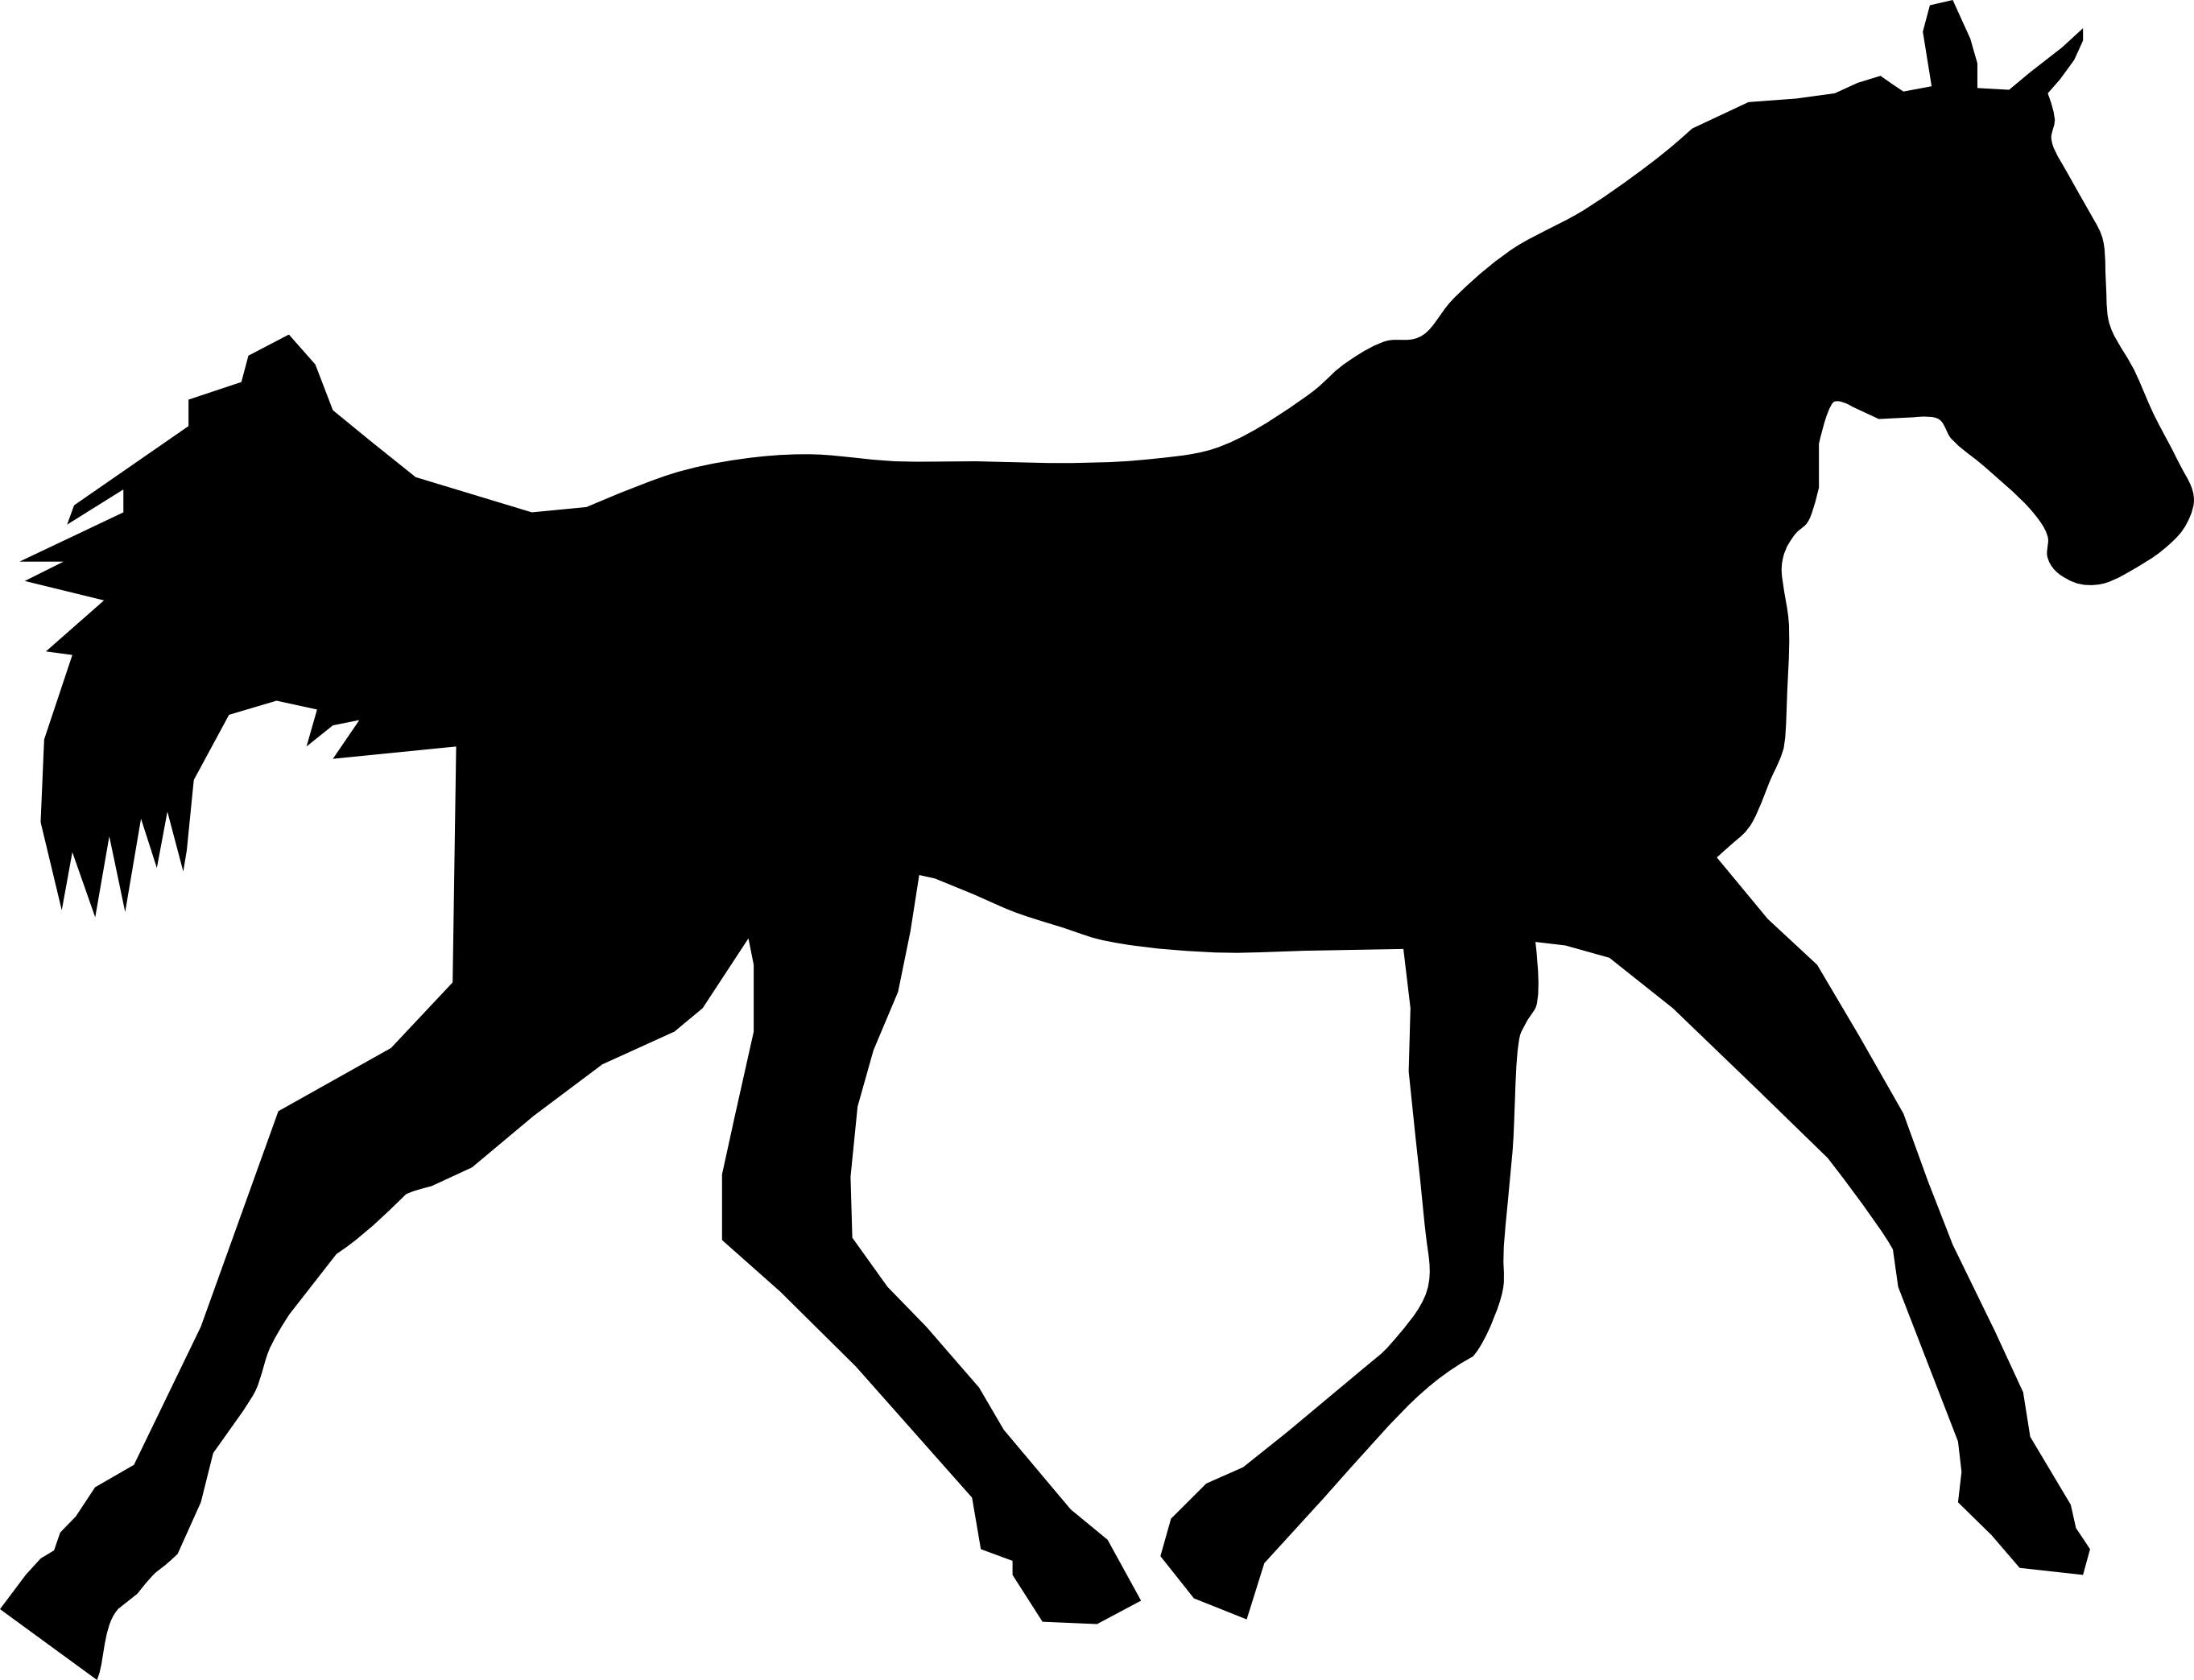 Pony Silhouette Png - Horse Pony Silhouette Clip art - animal silhouettes png download ...